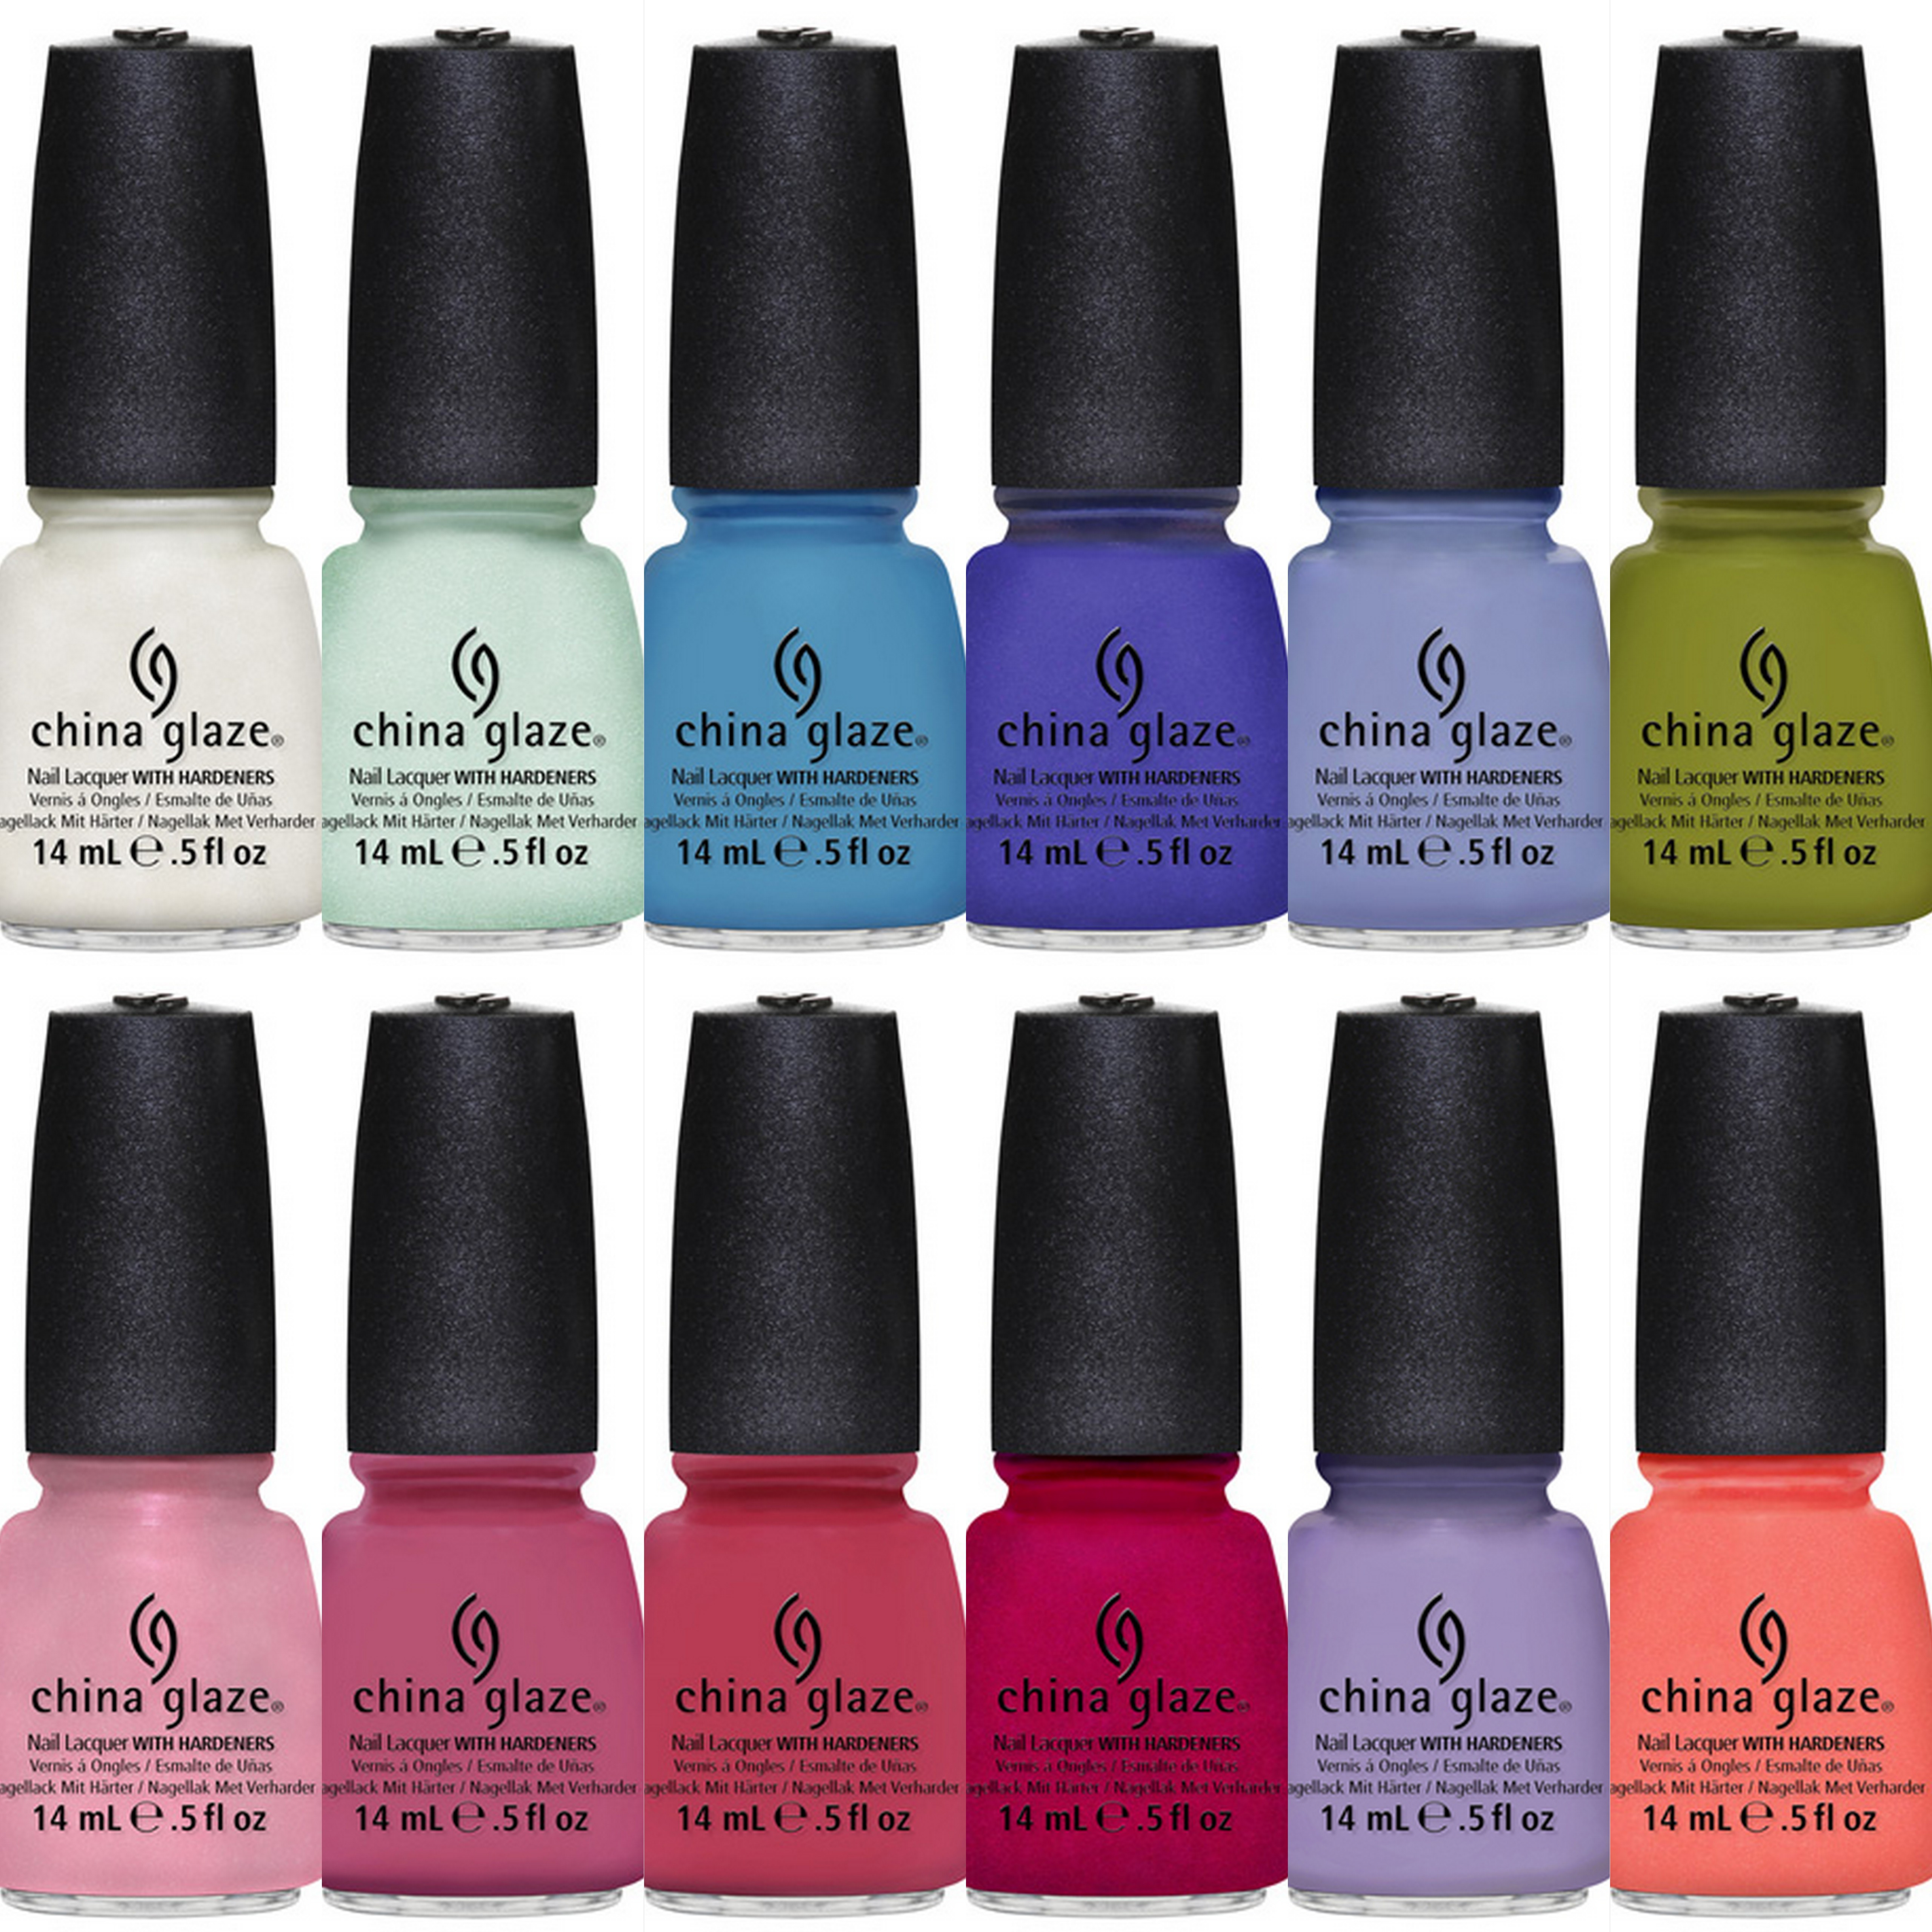 China Glaze Nail Lacquer Invites You to Visit the Avant Garden. Pictures1